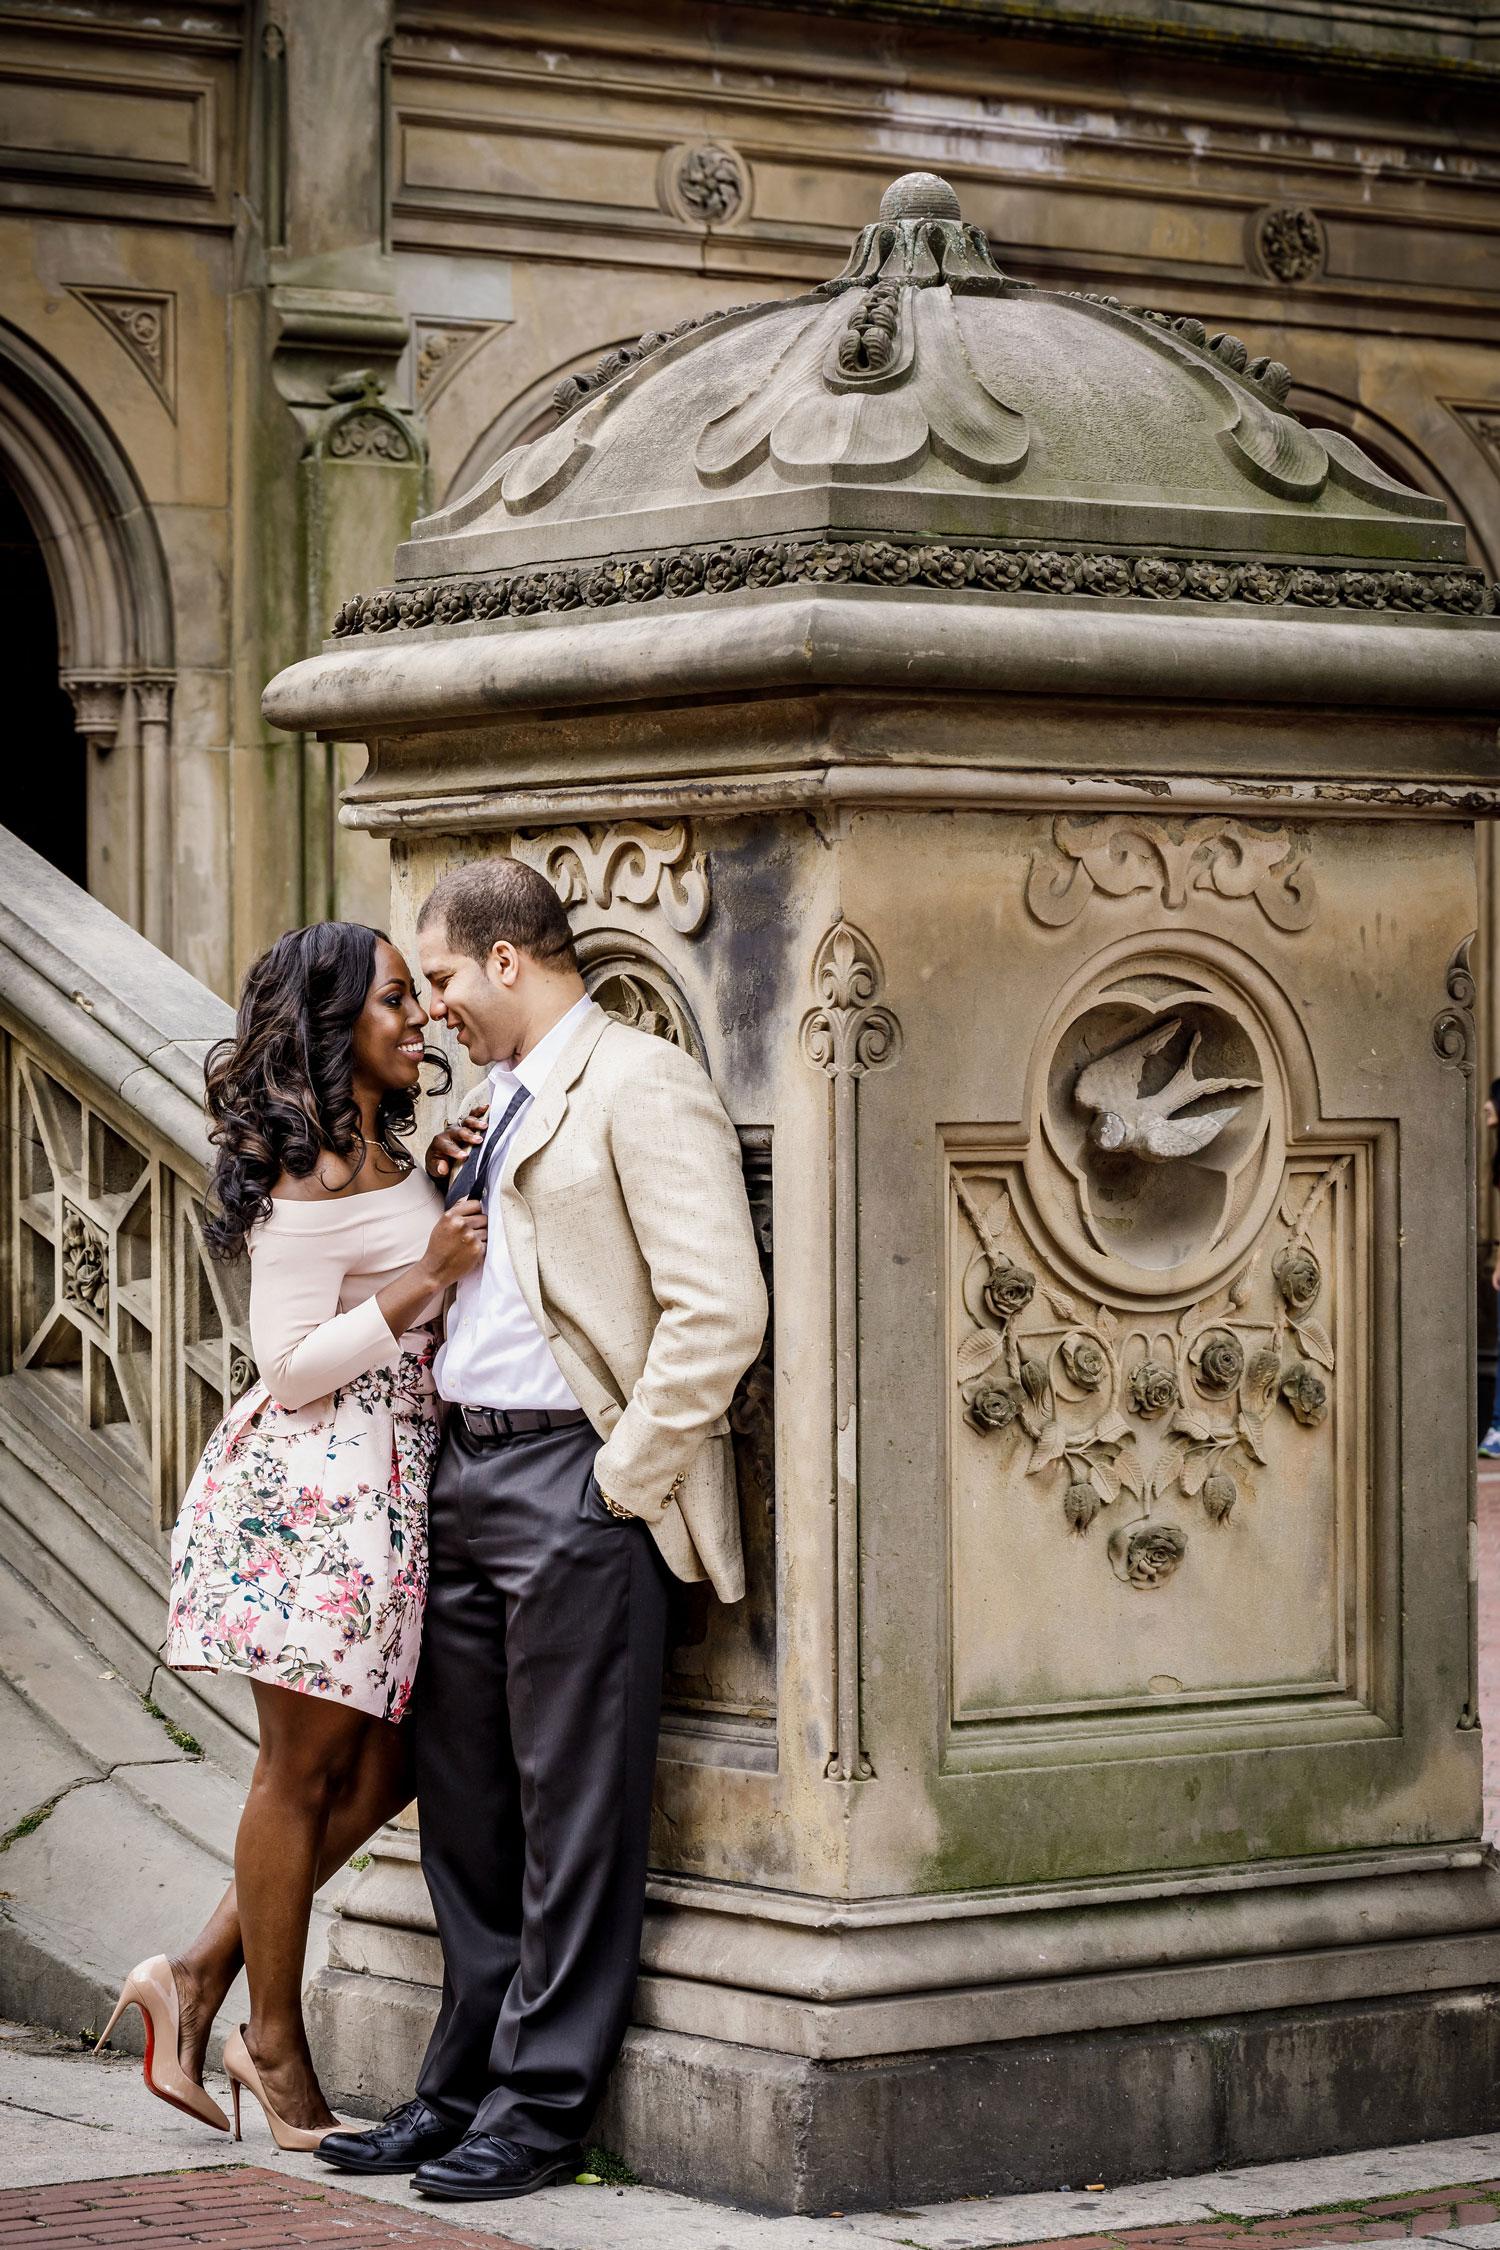 New York City central park engagement session photo by Amy Anaiz Bethesda Fountain kissing at base of stairs